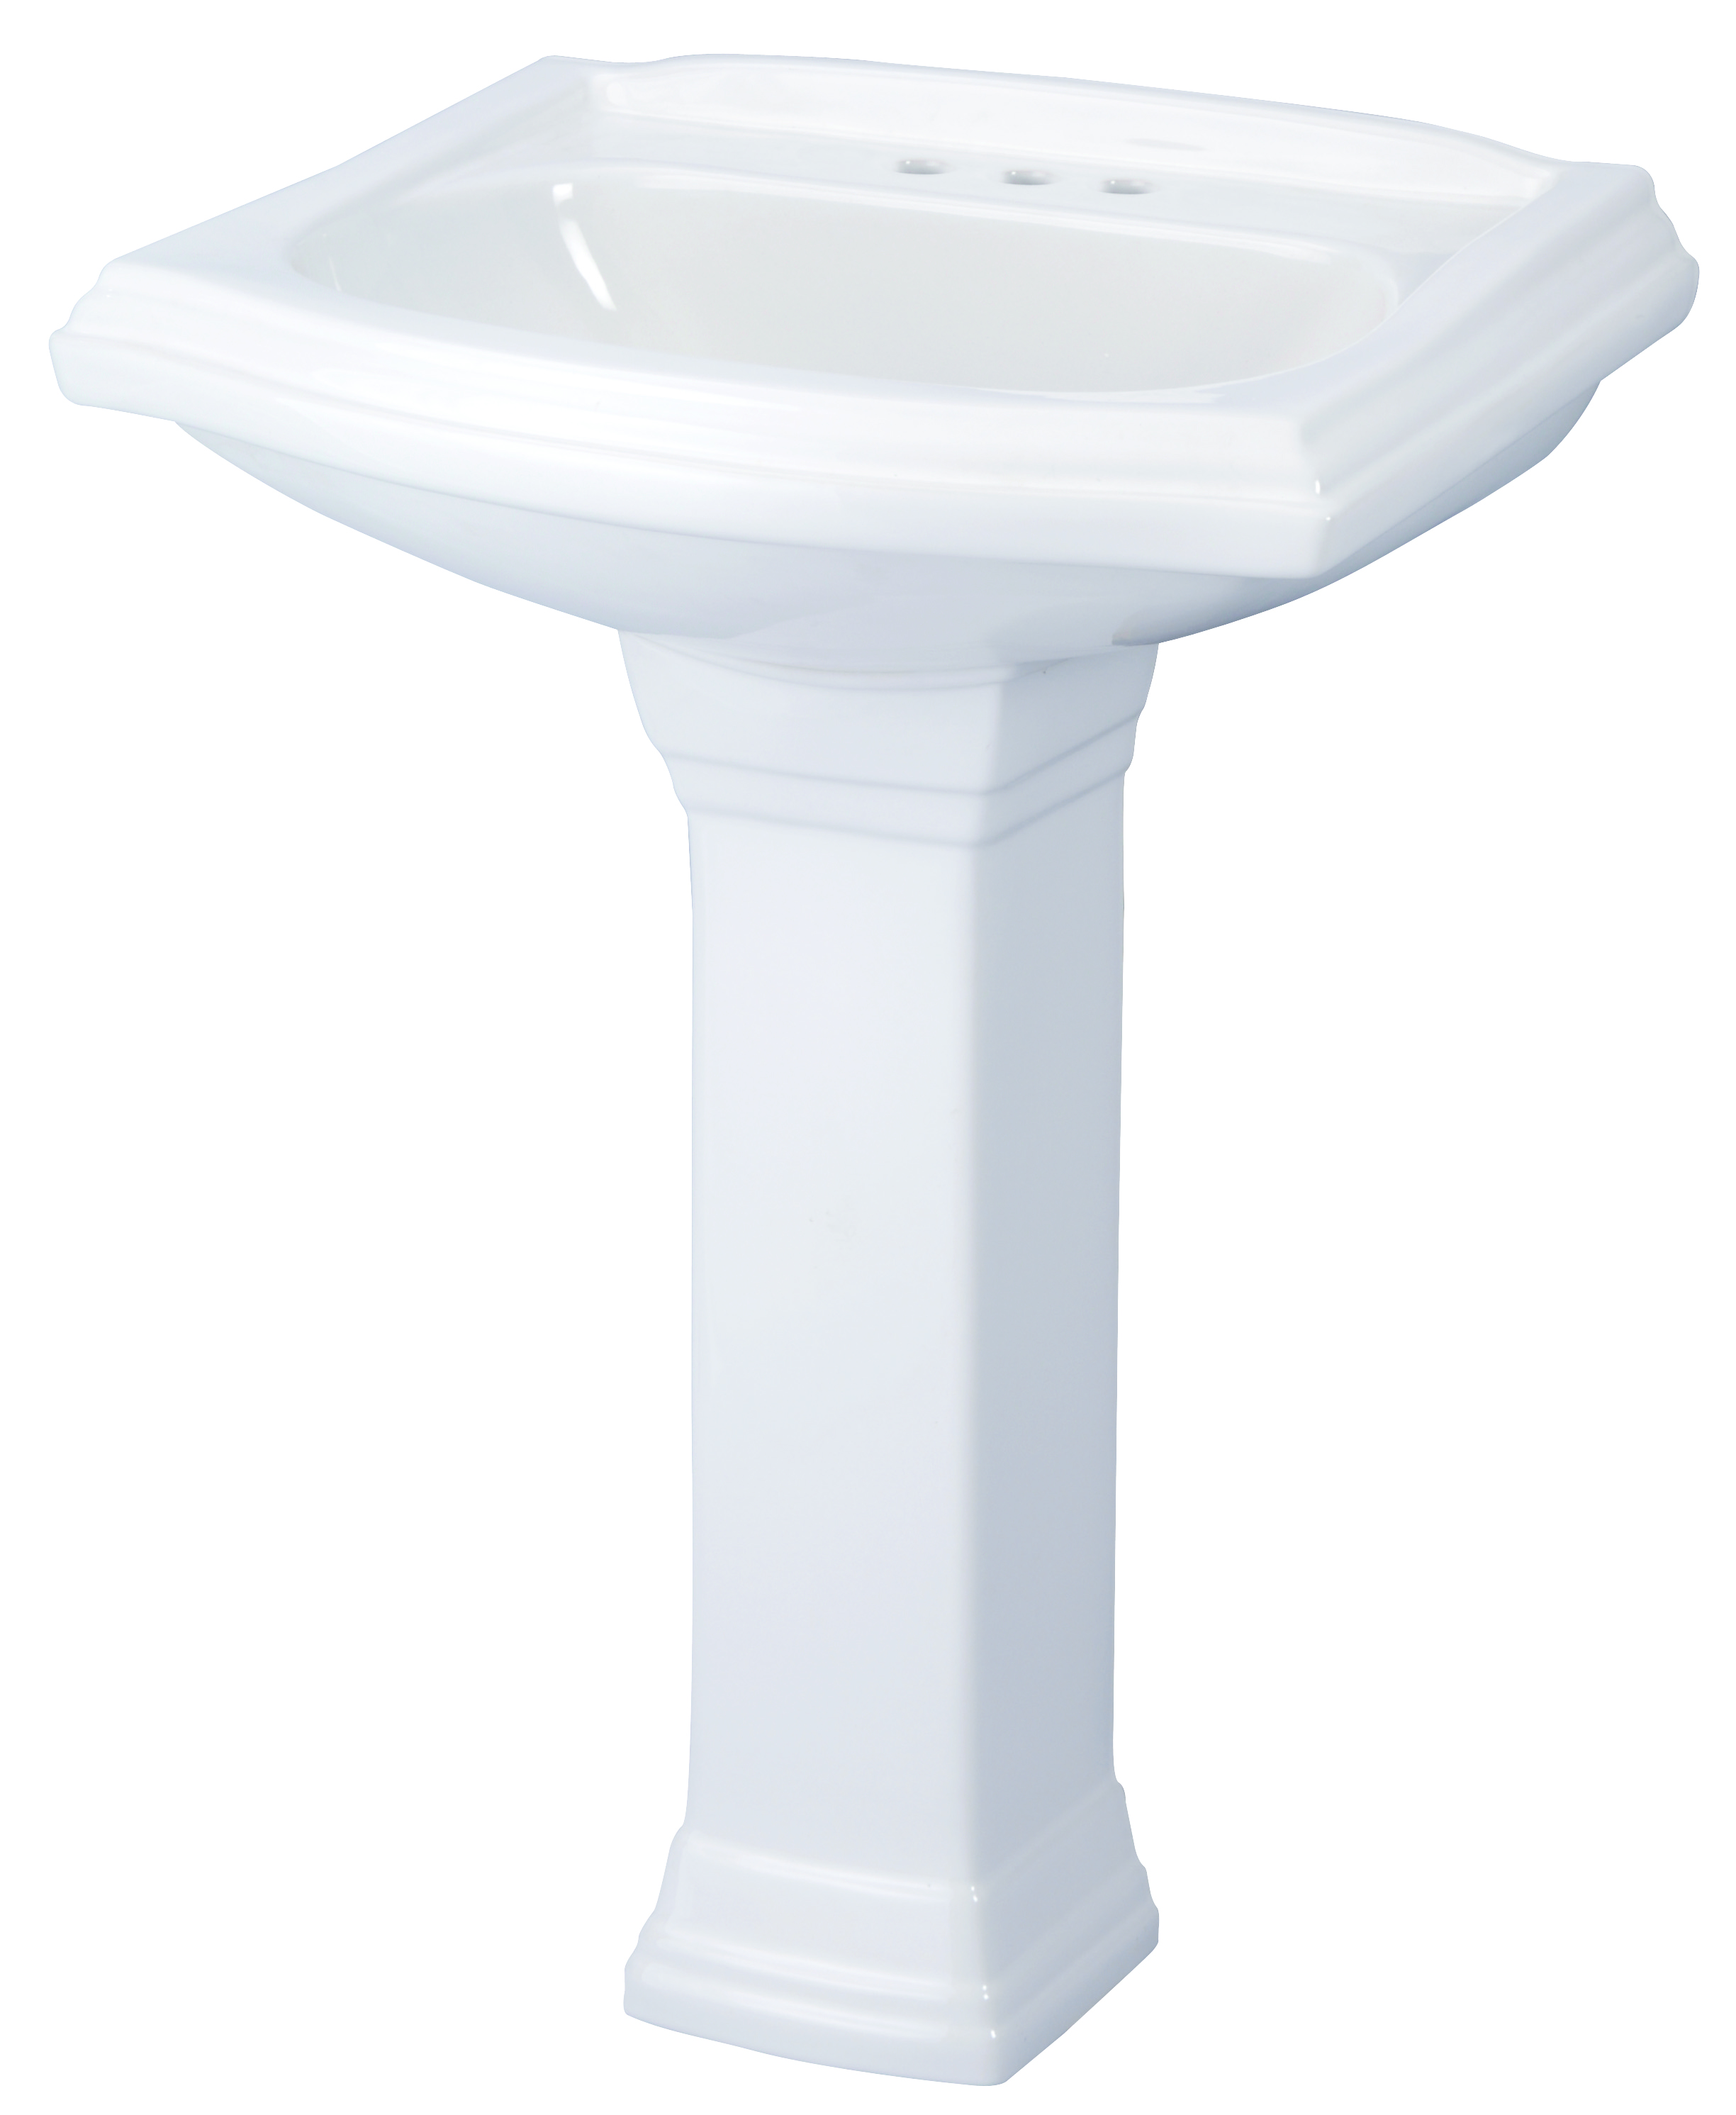 sink box under elegant pedestal bathroom tile tub white shower designs g